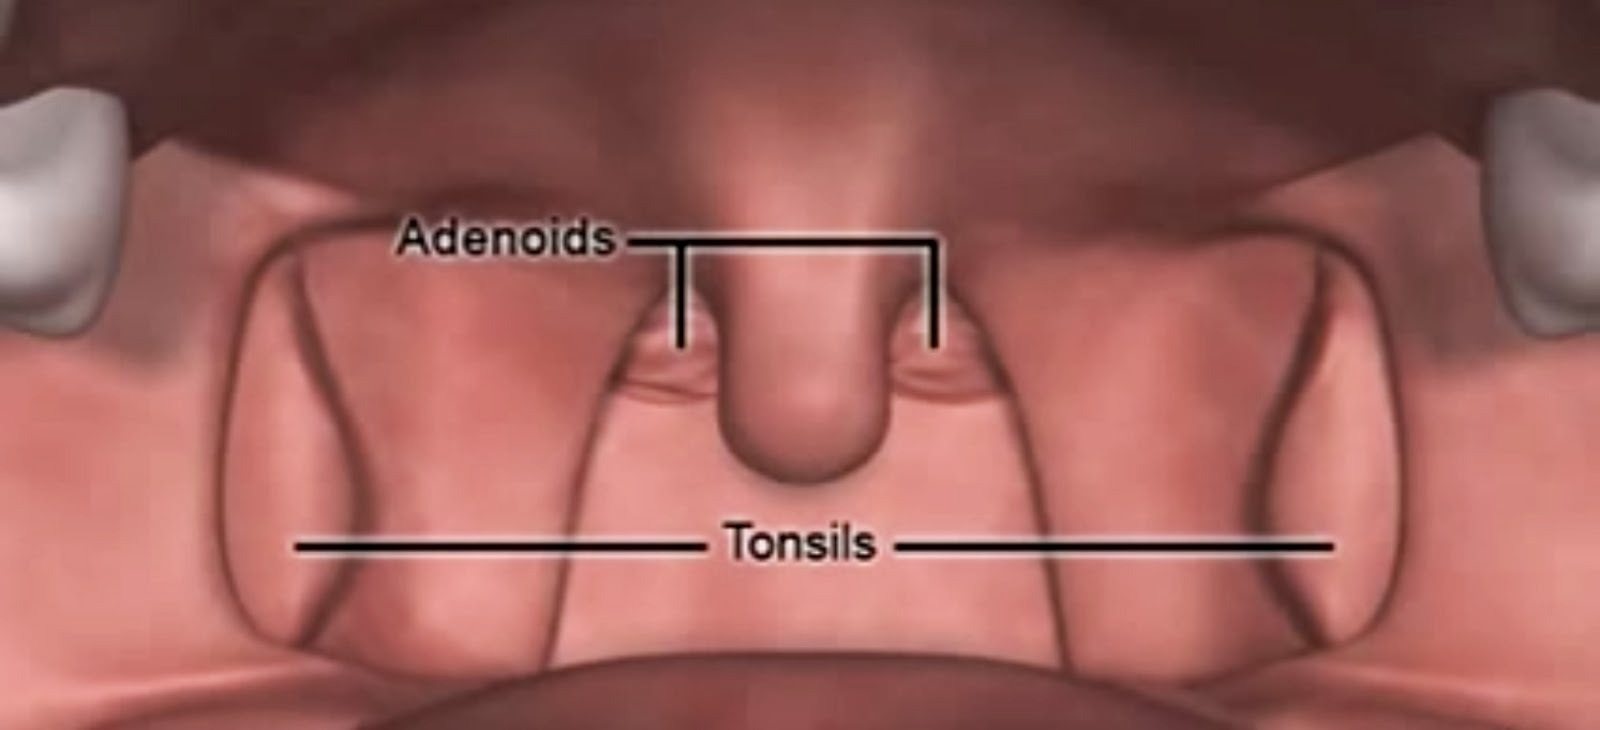 adenoids - what are adenoids? - ency123, Human Body